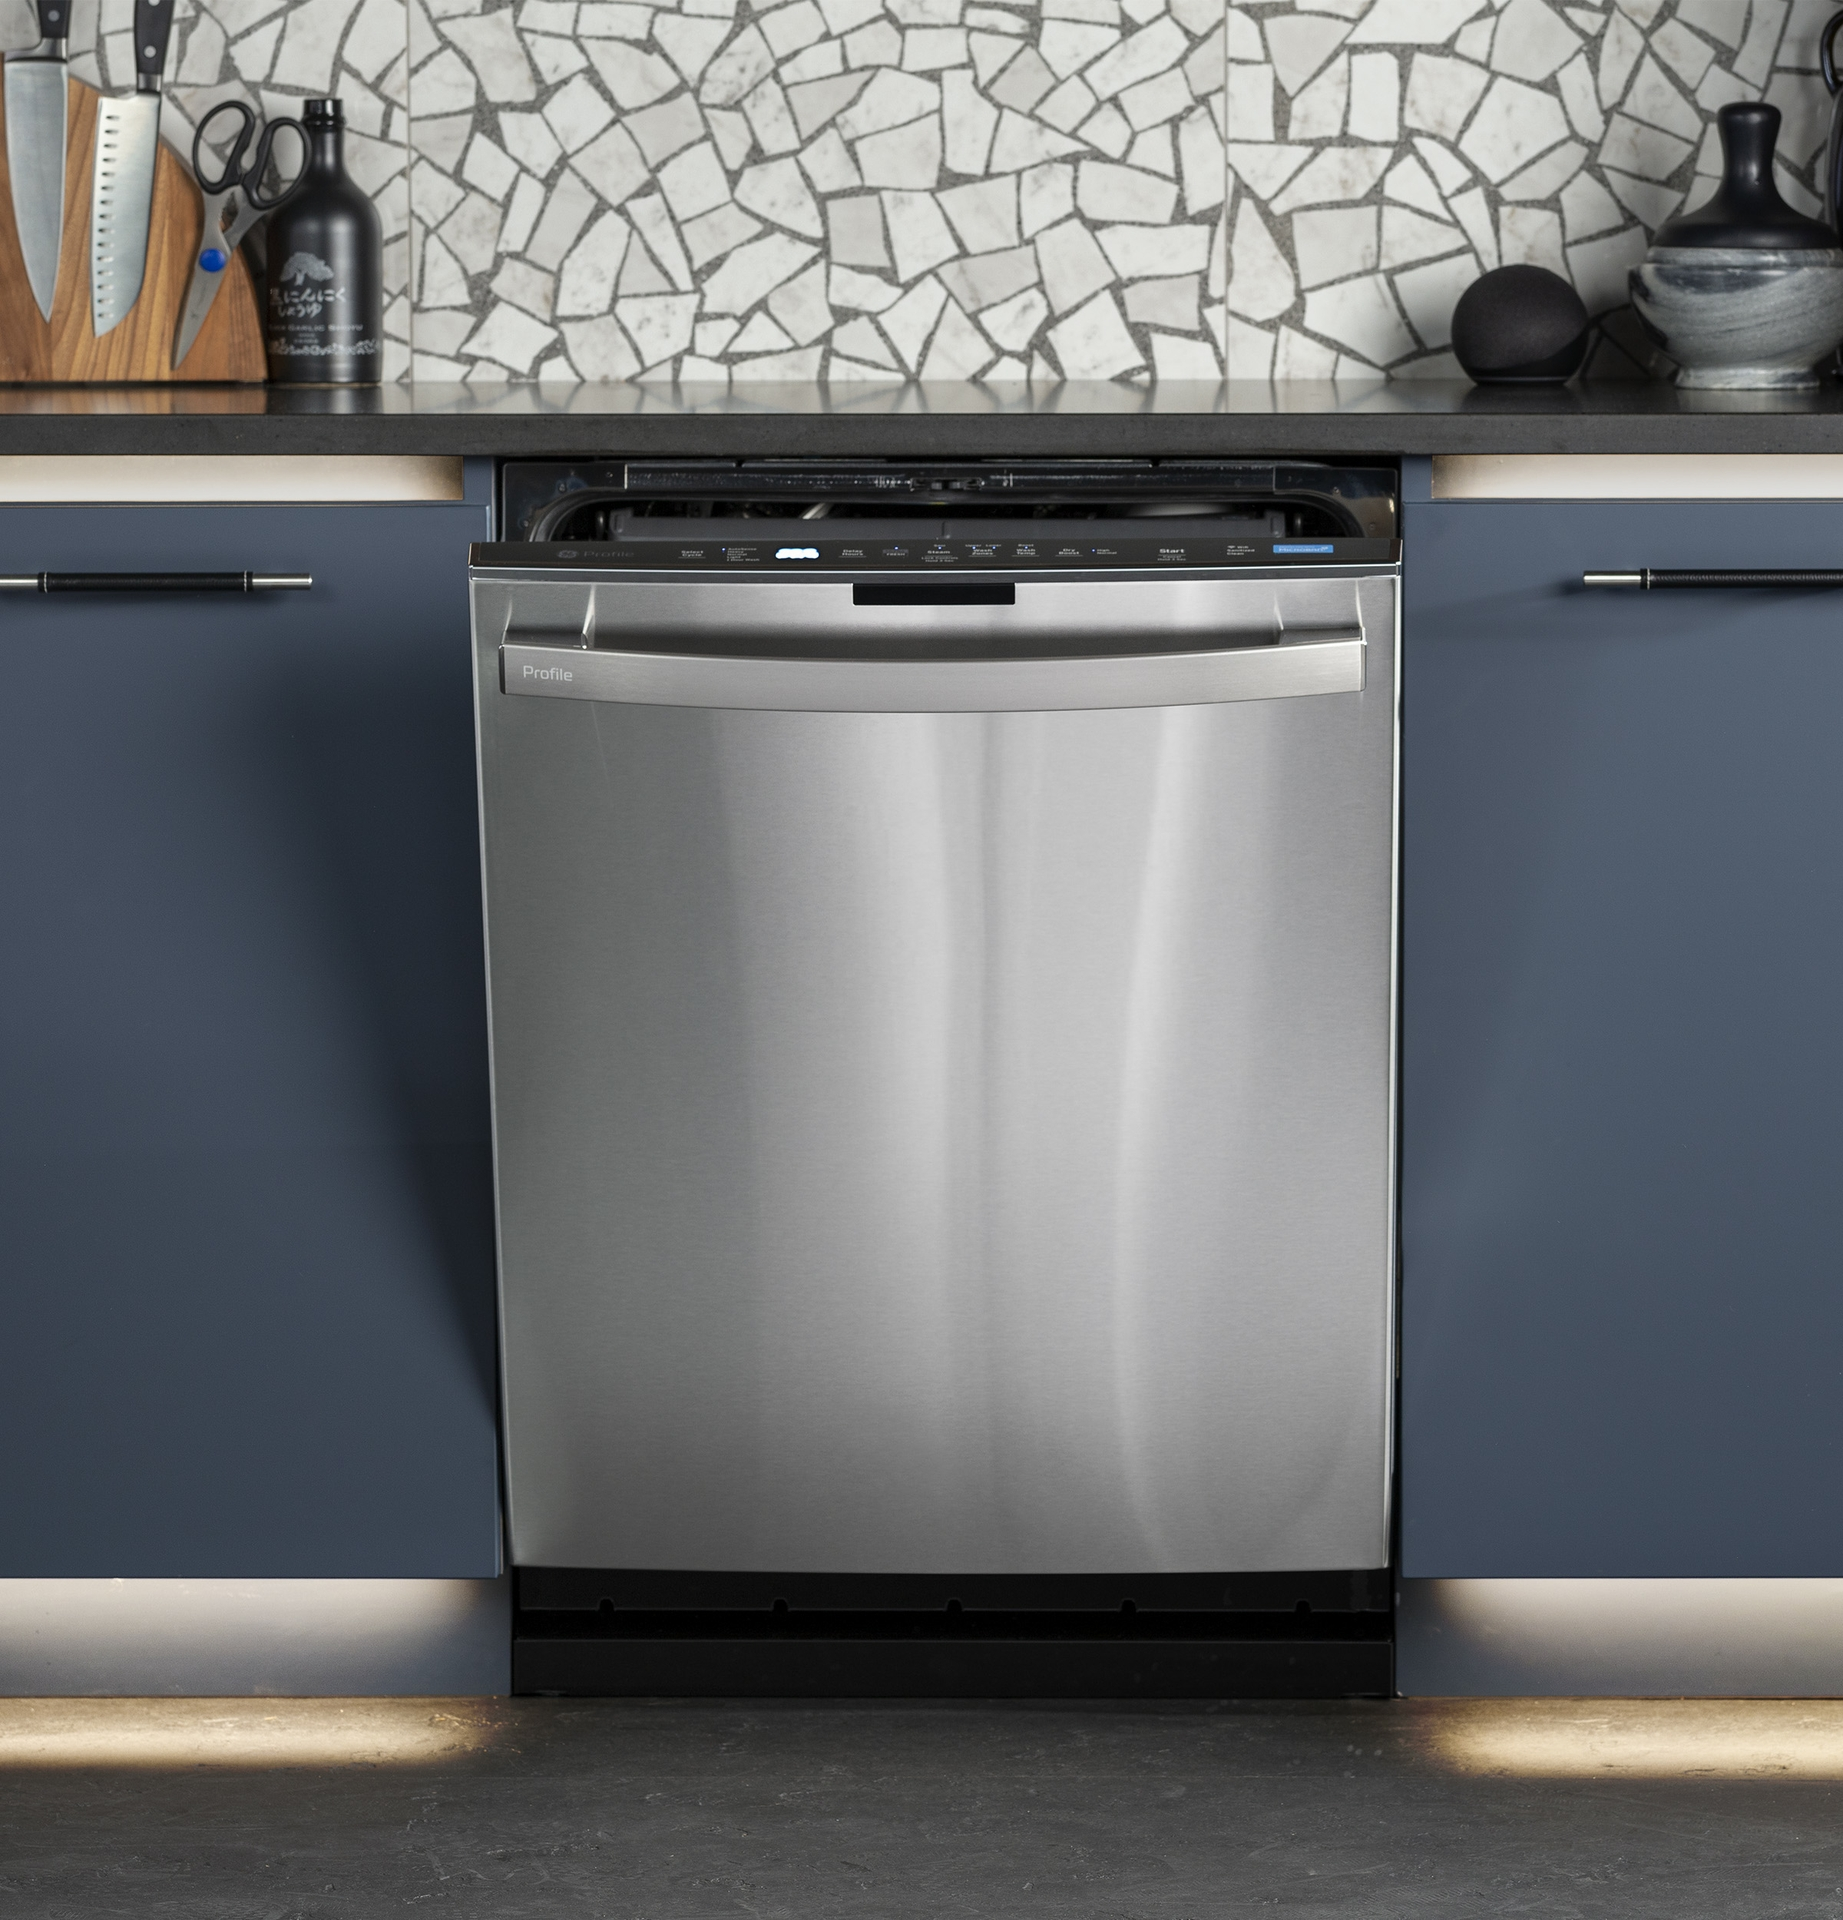 GE Profile UltraFresh System™ Dishwasher with Microban® Antimicrobial Technology